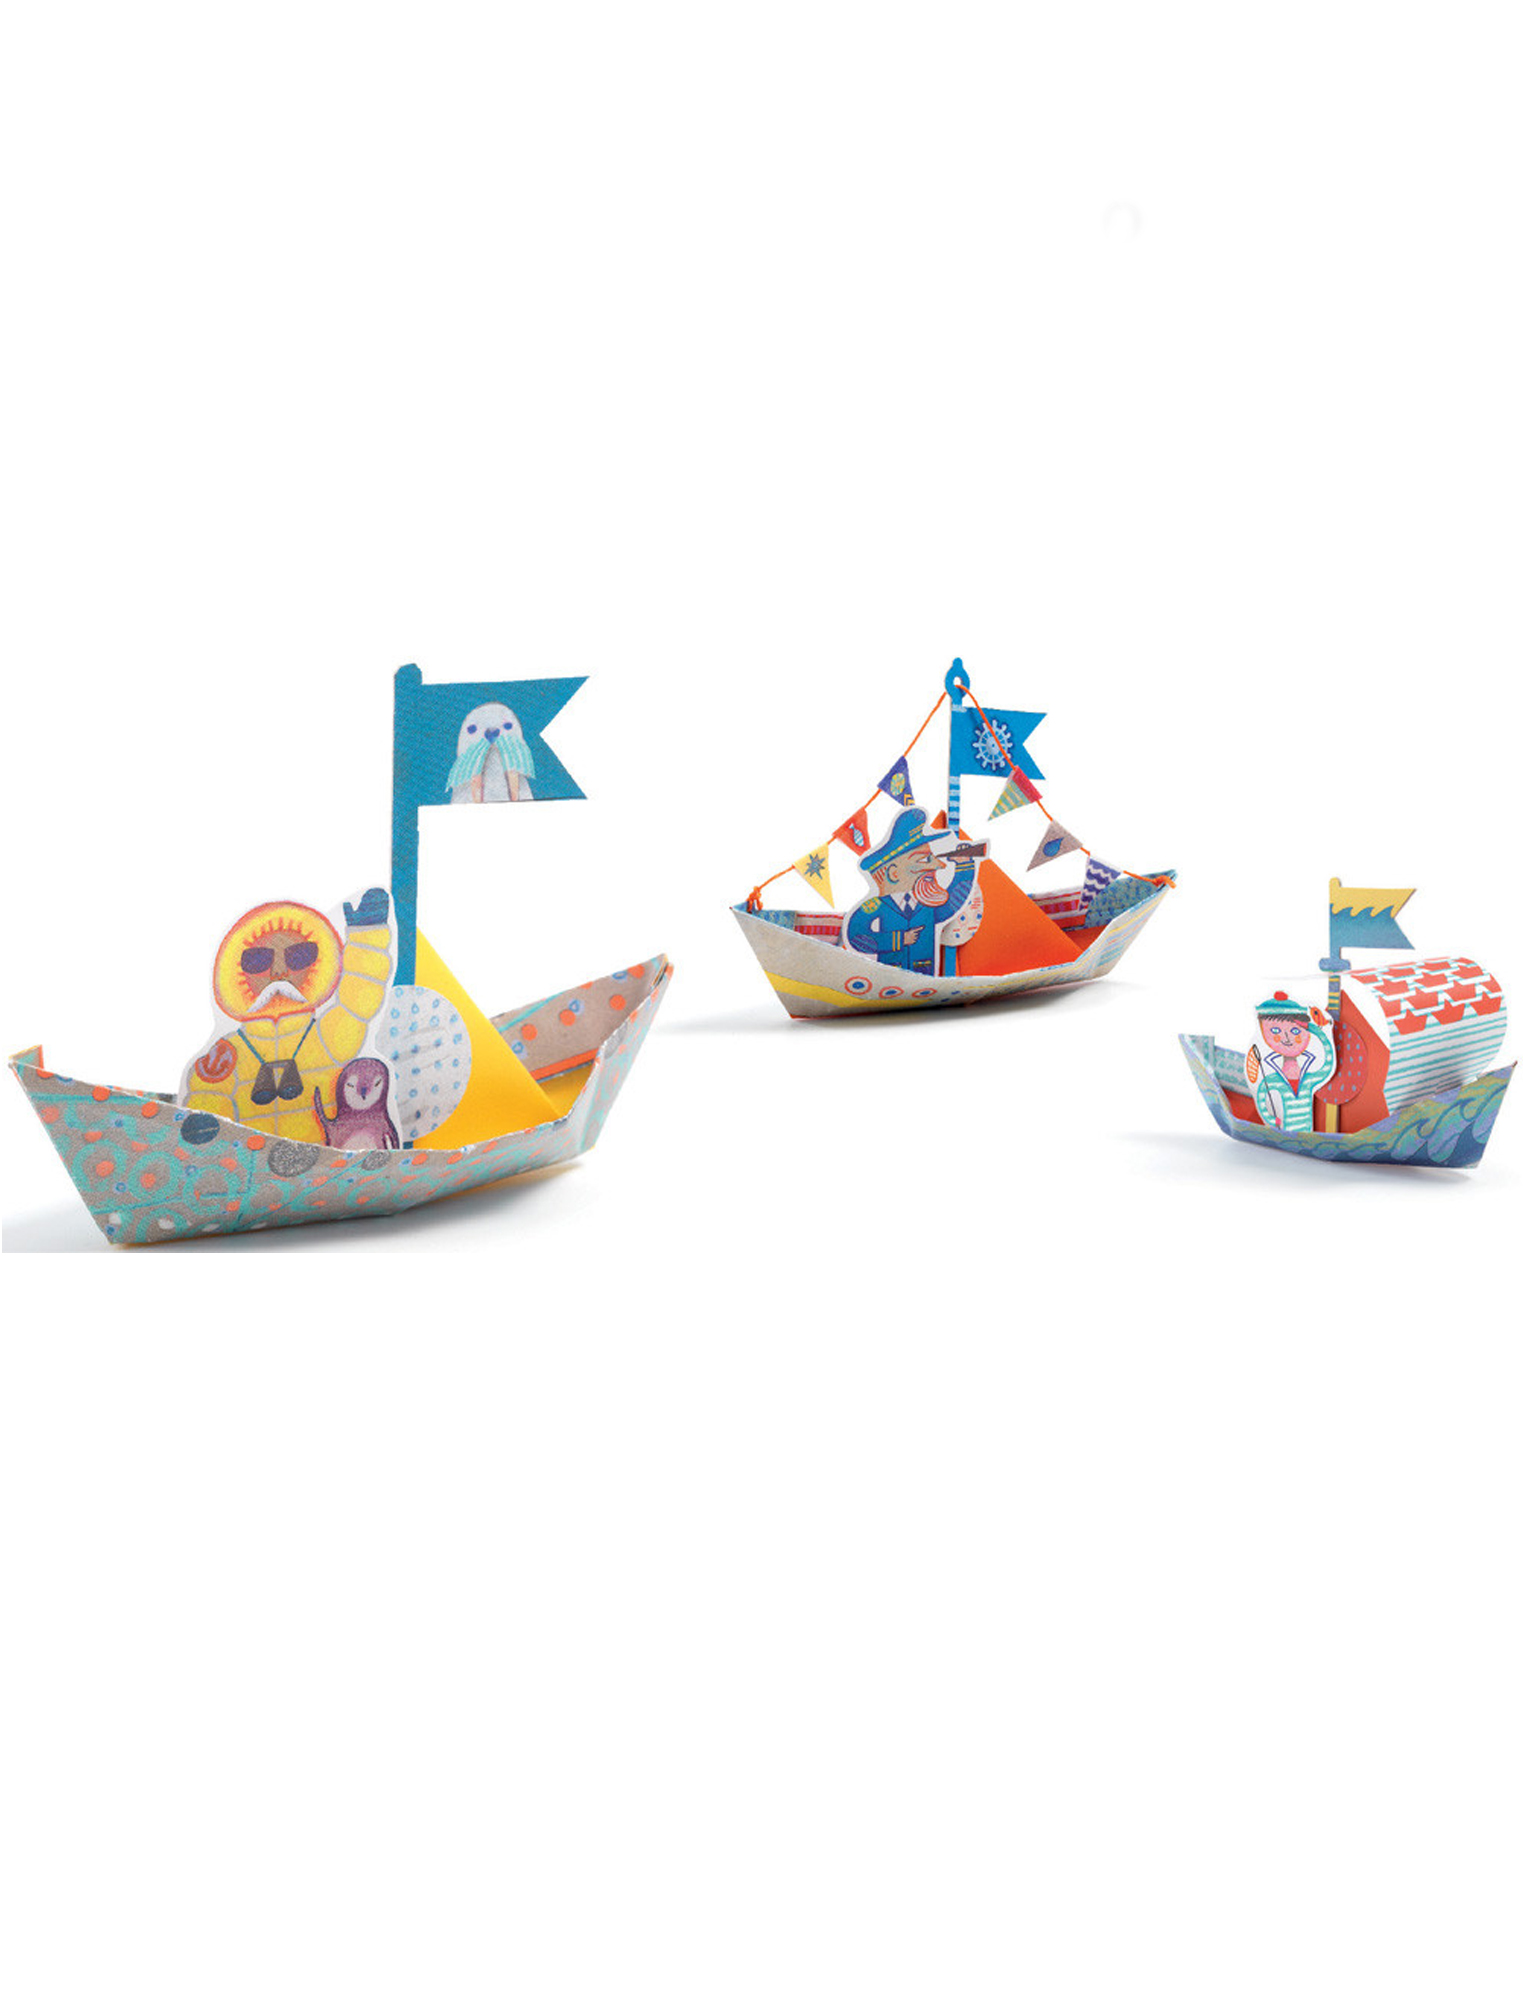 Djeco Origami Boats on the Water